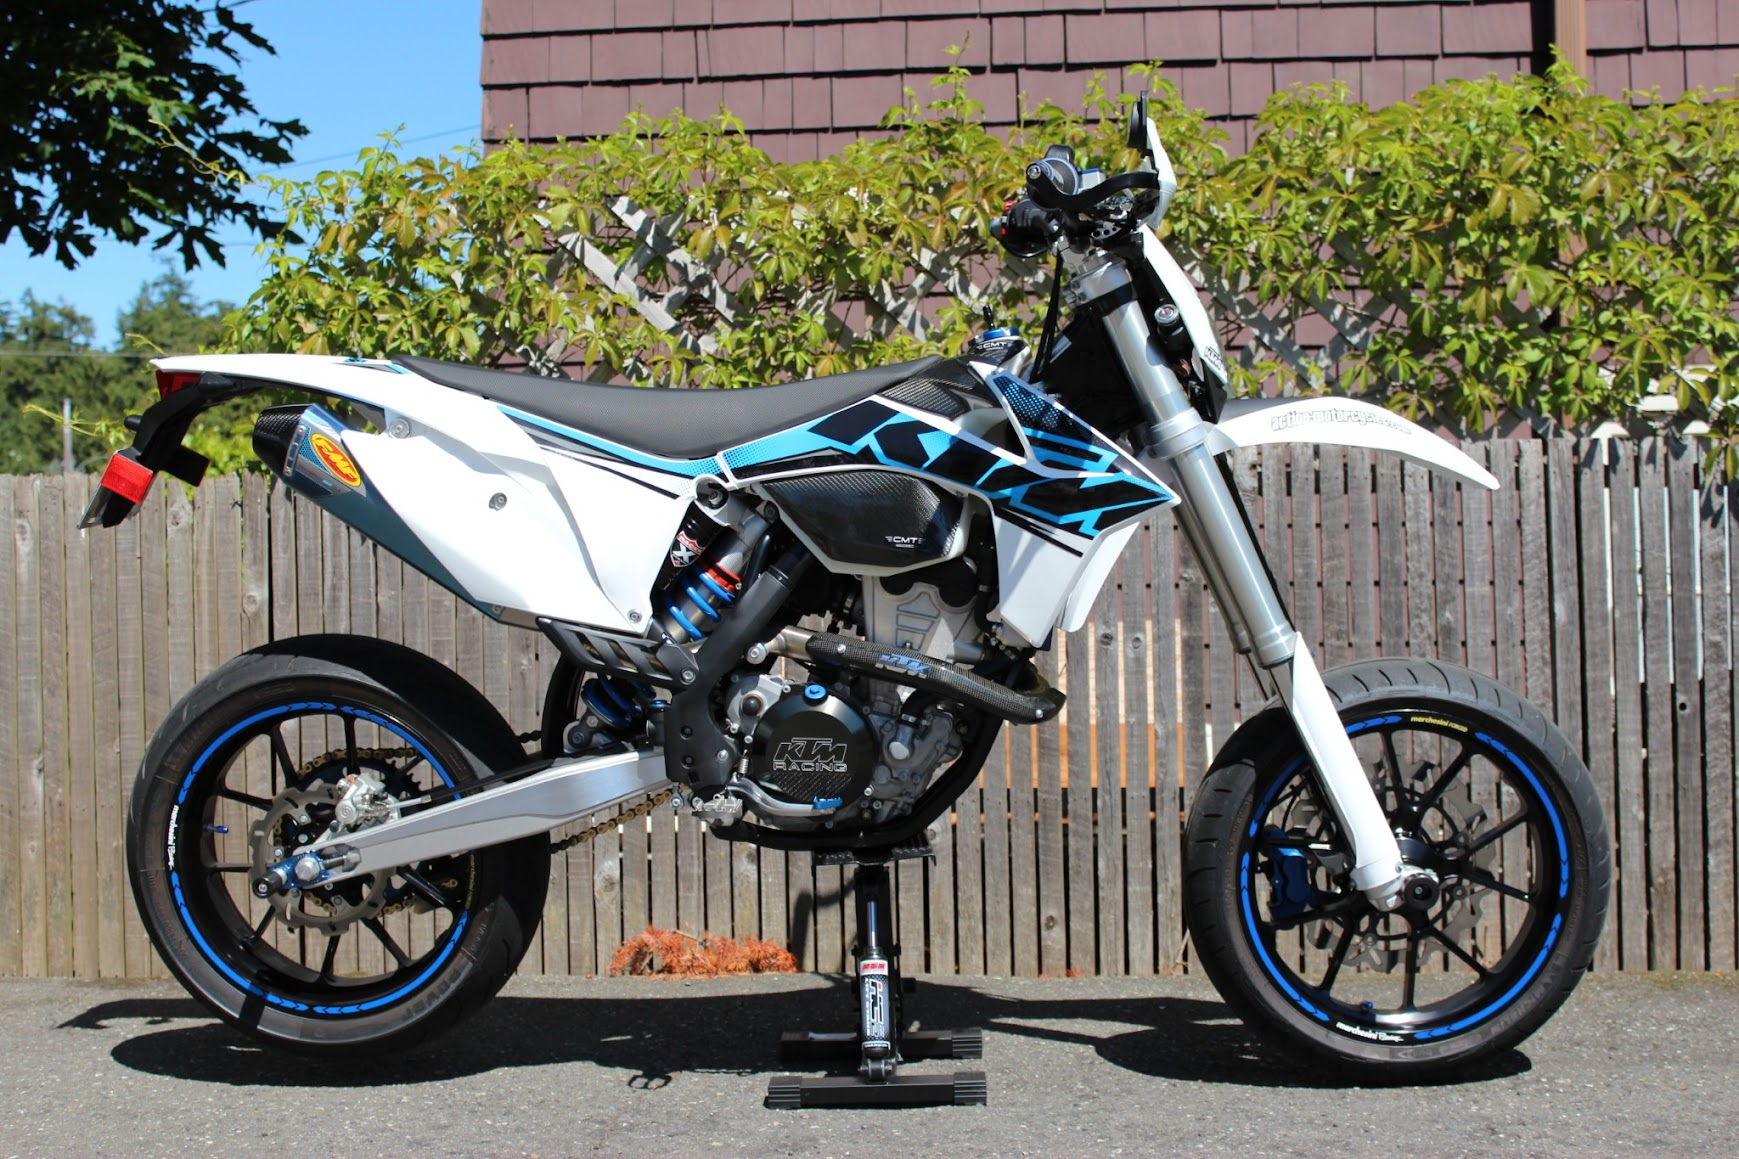 2012 ktm 500 exc..supermoto awesomeness for the streets